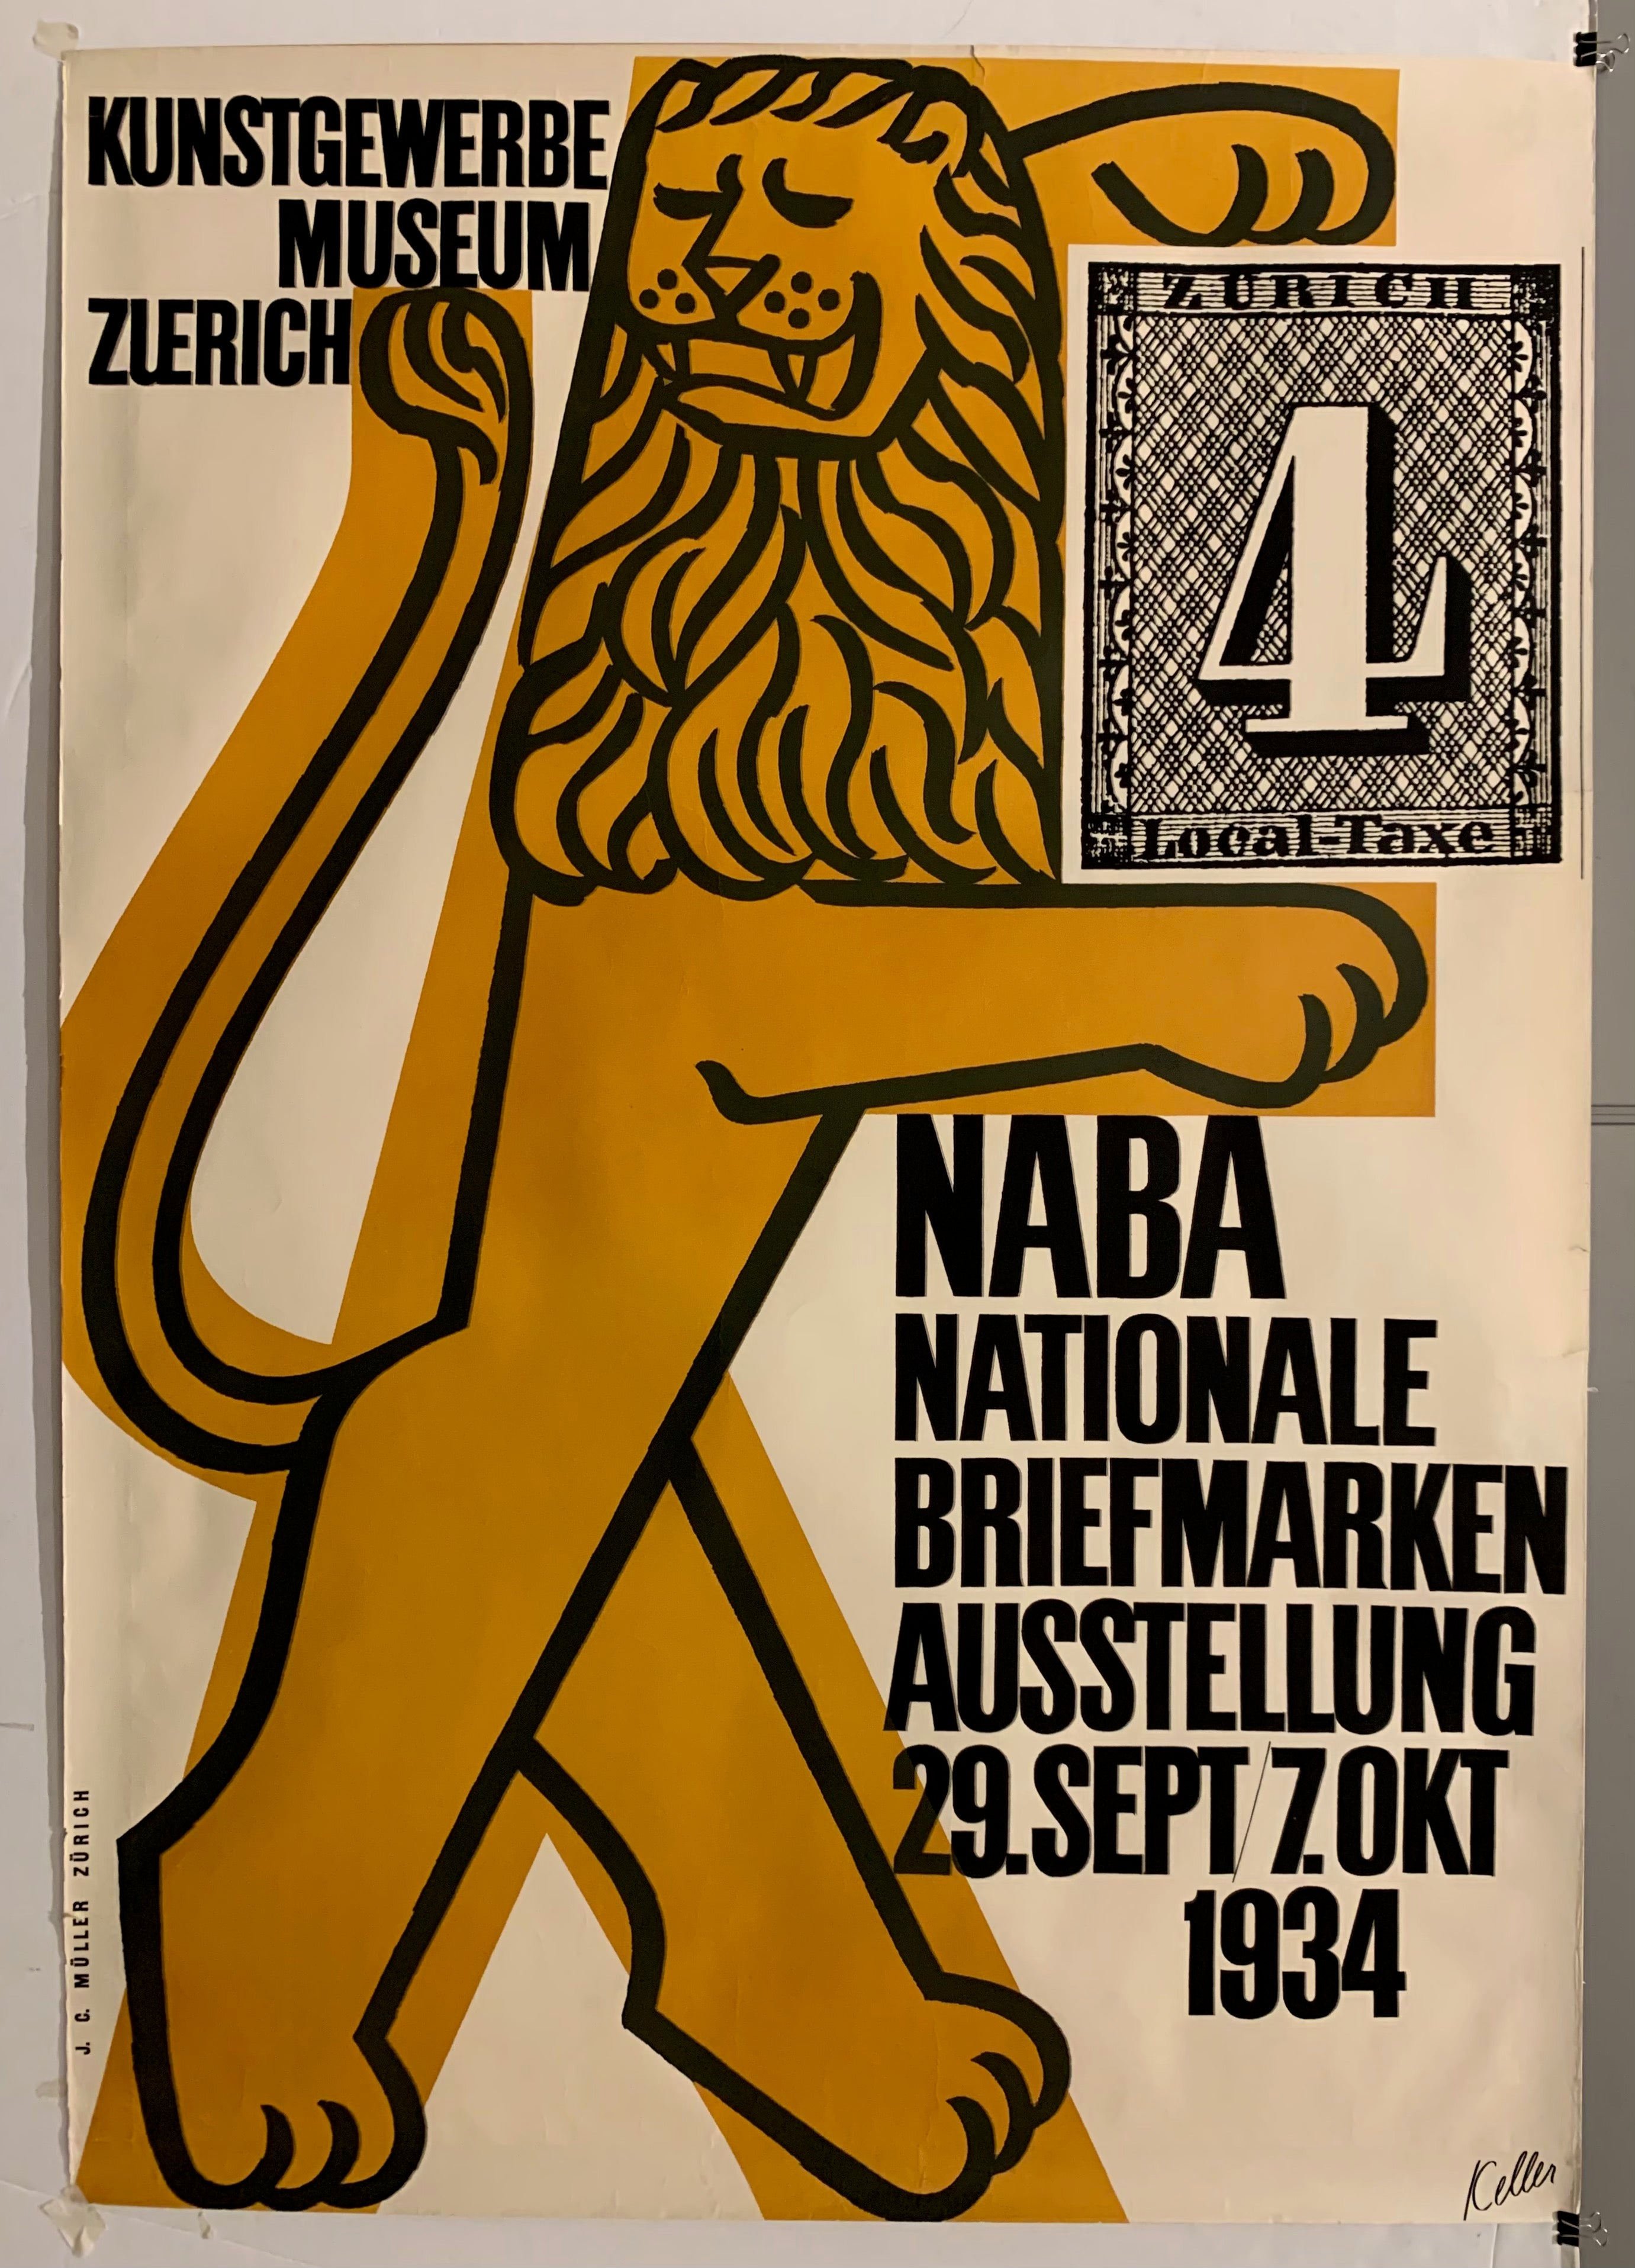 Naba Nationale Briefmarkenausstellung Poster